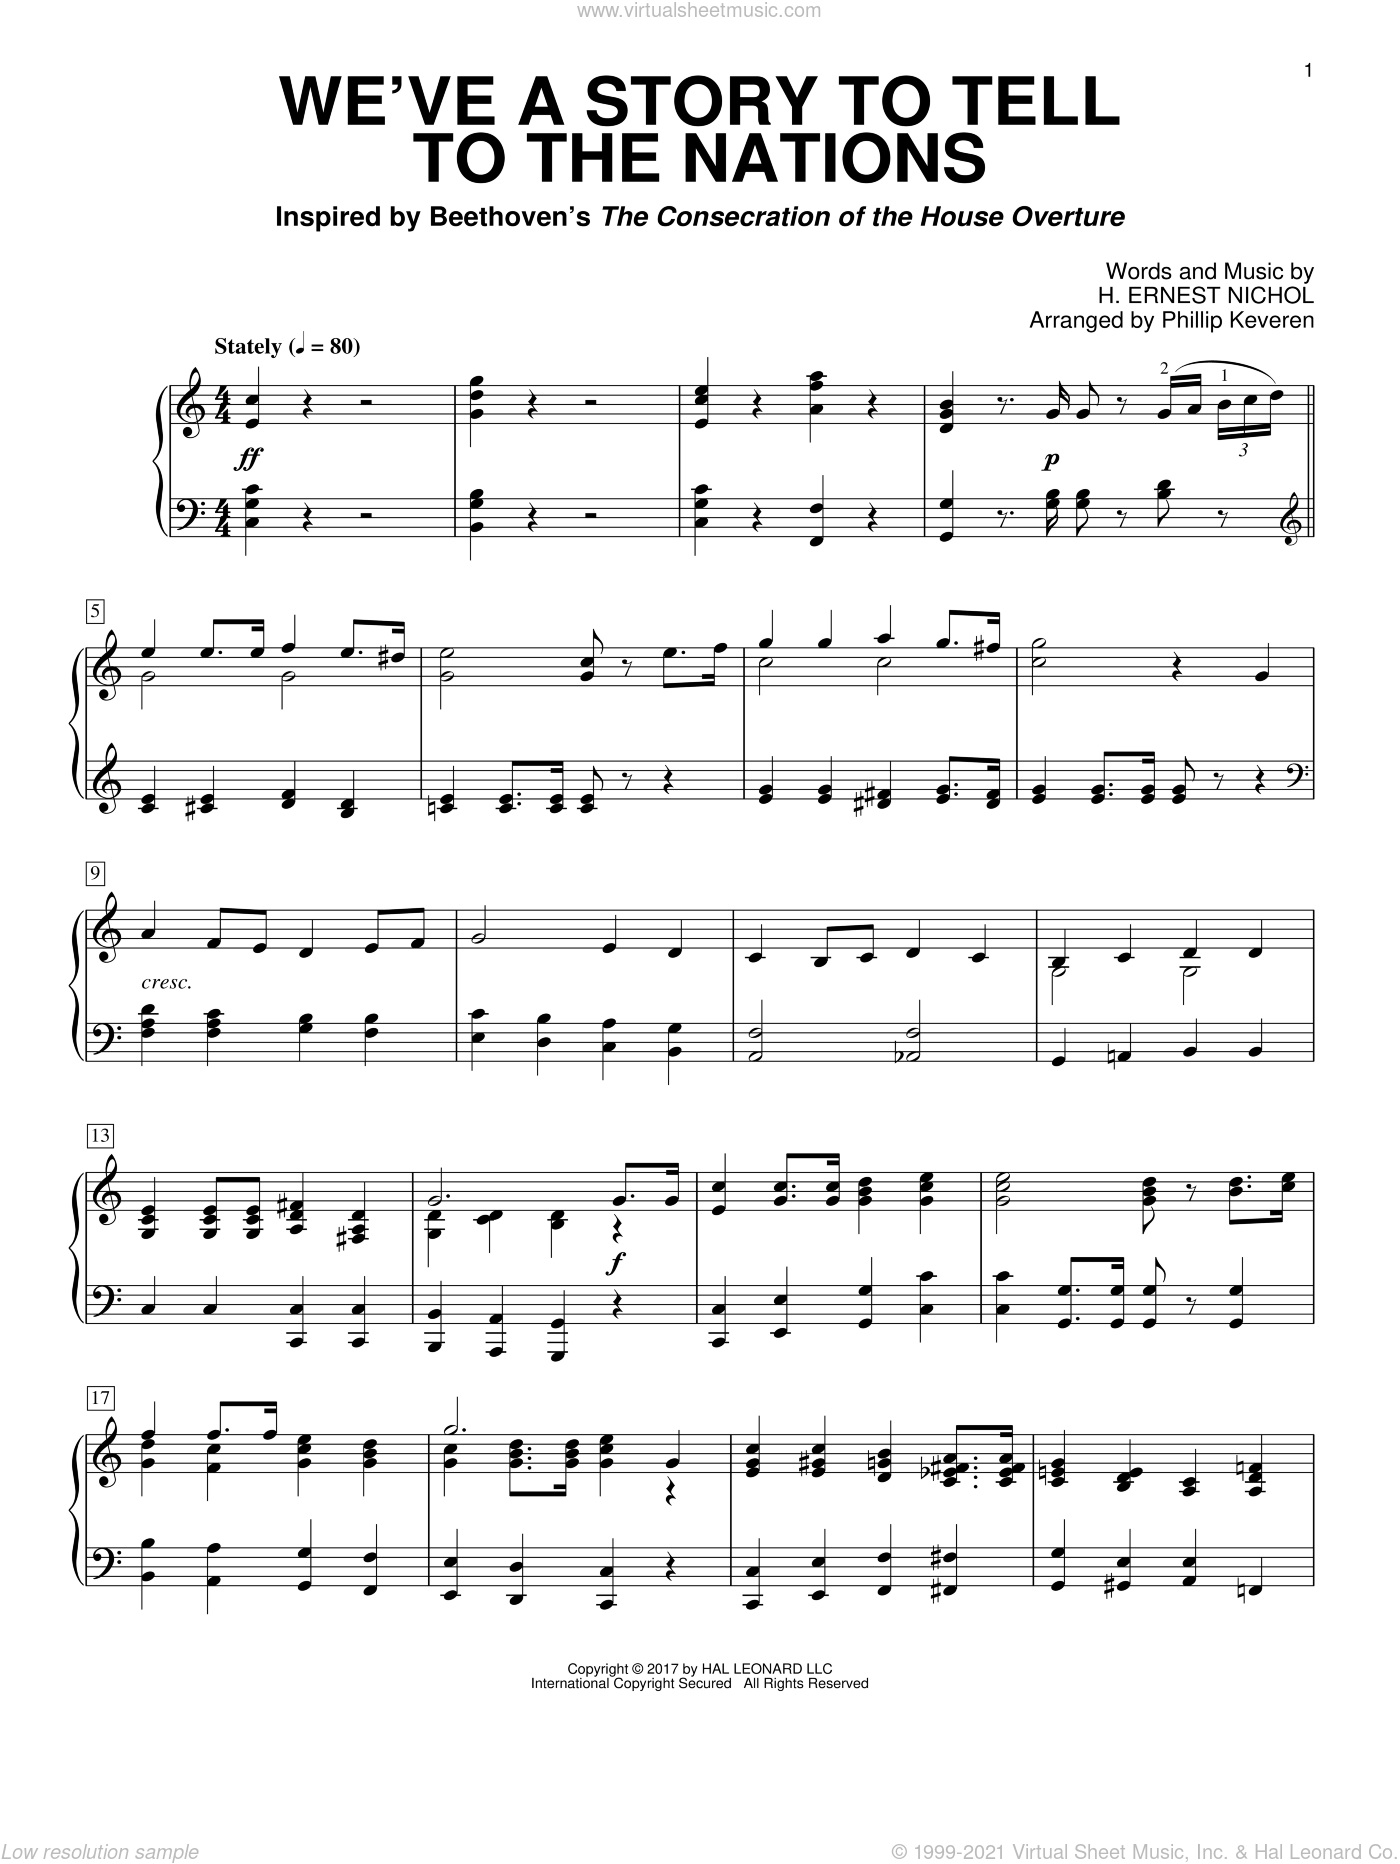 We've A Story To Tell To The Nations sheet music for piano solo by H. Ernest Nichol and Phillip Keveren. Score Image Preview.